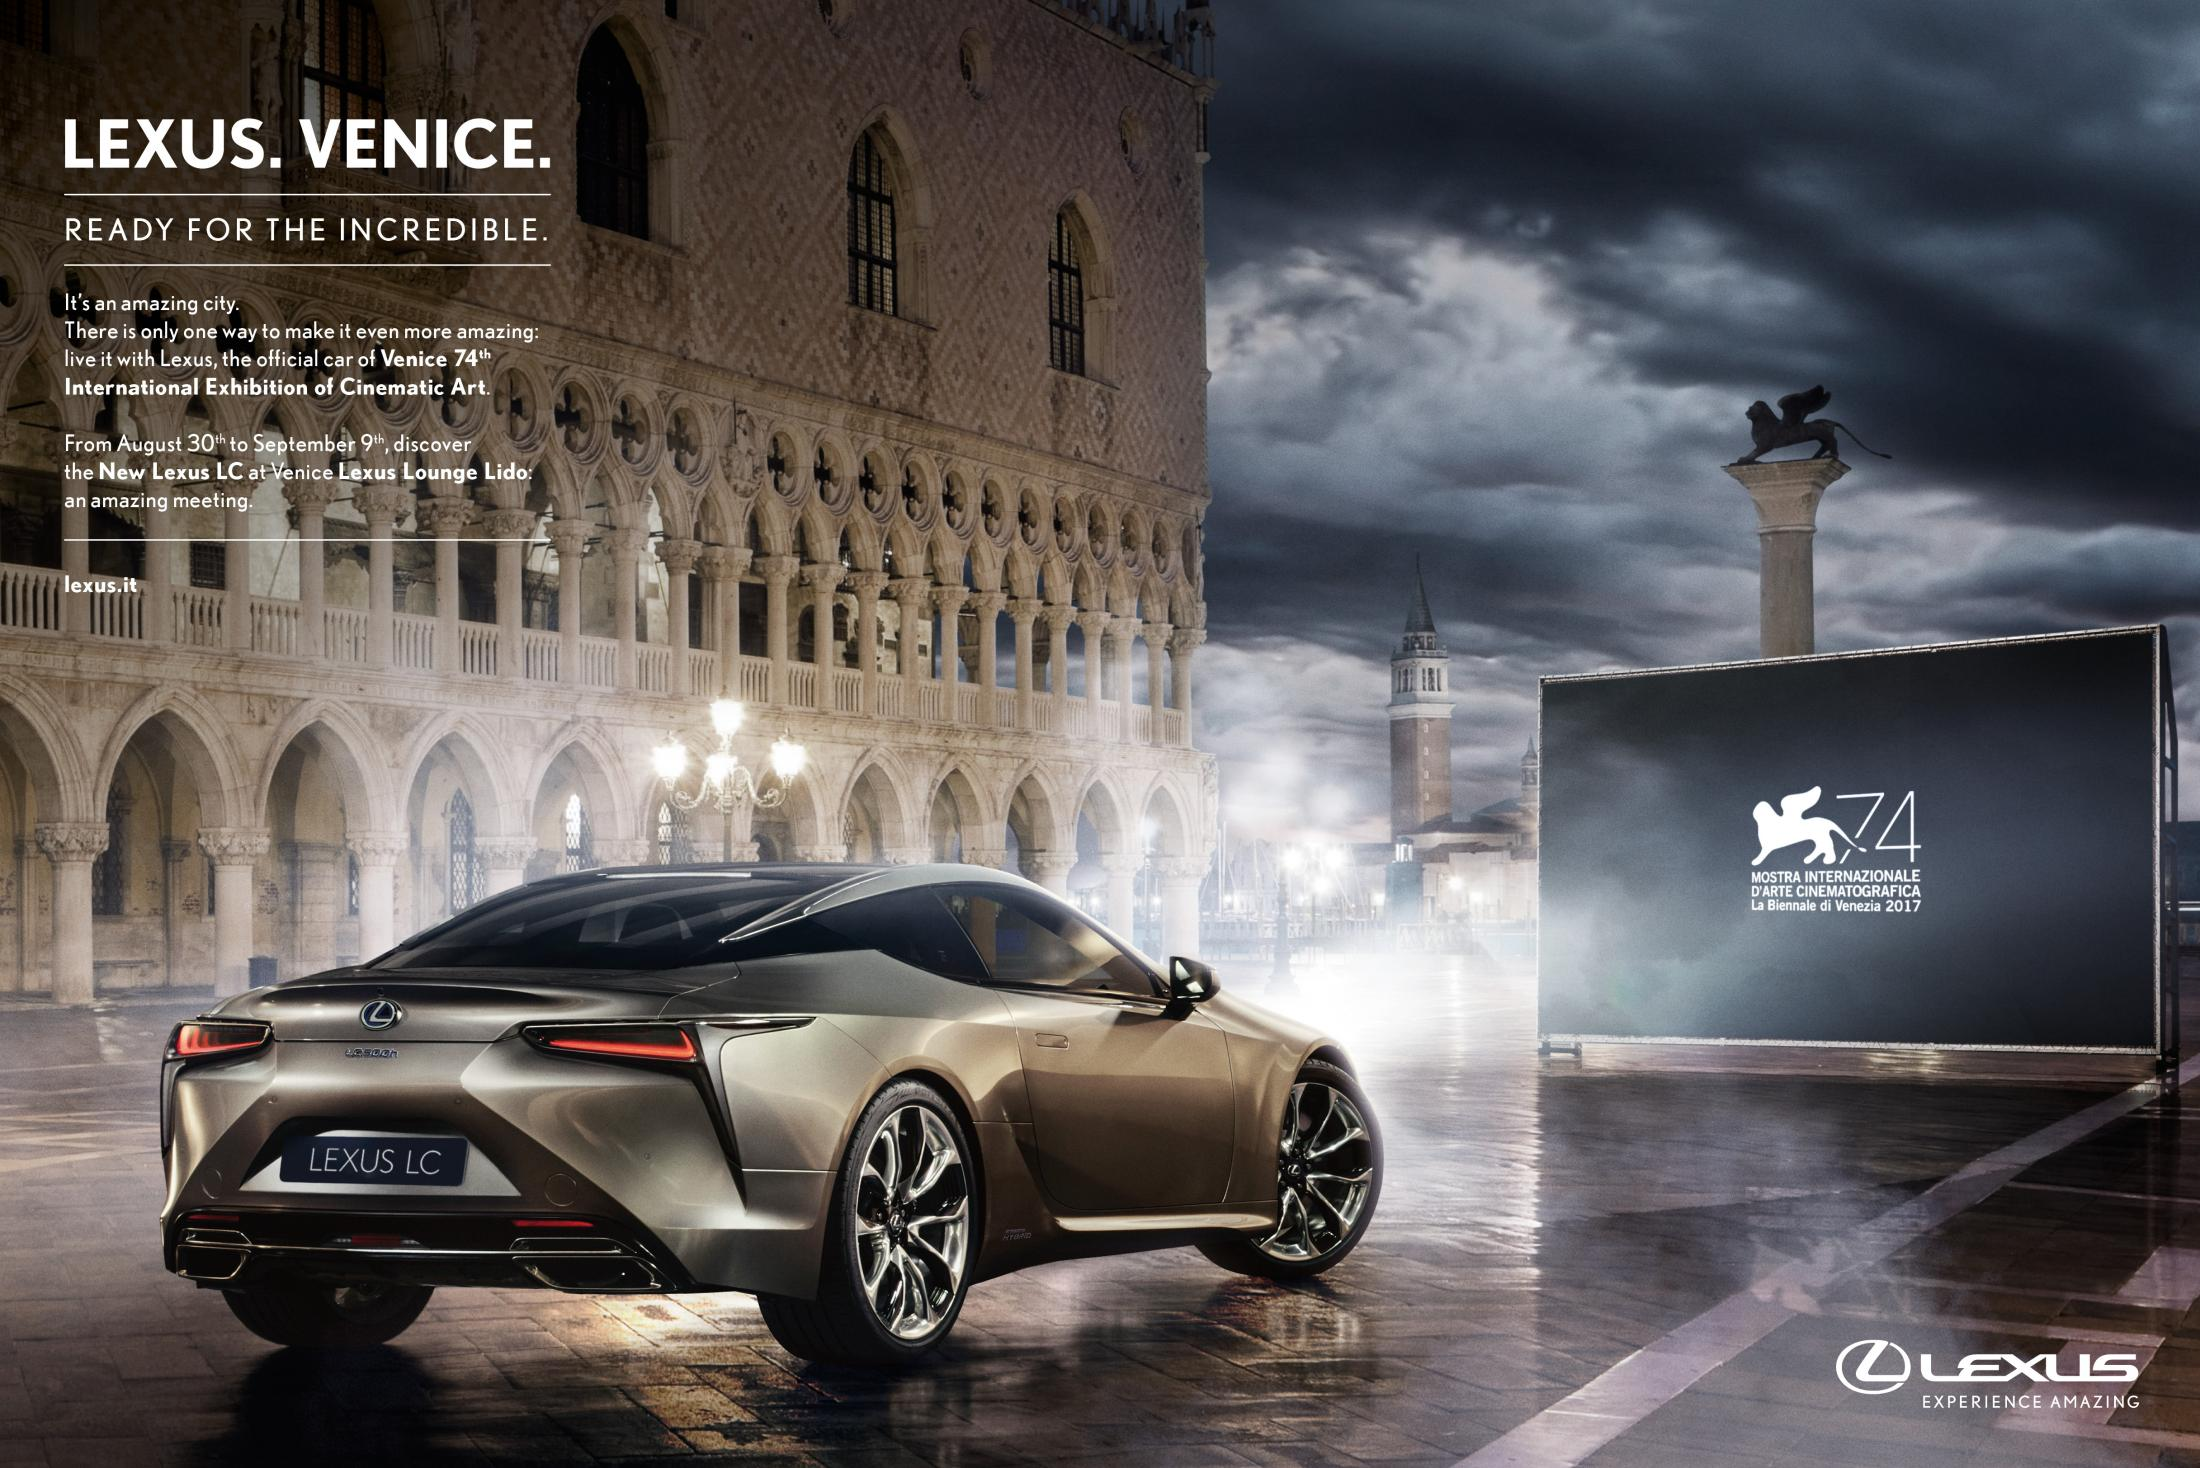 Lexus Print Ad - Ready for the Incredible